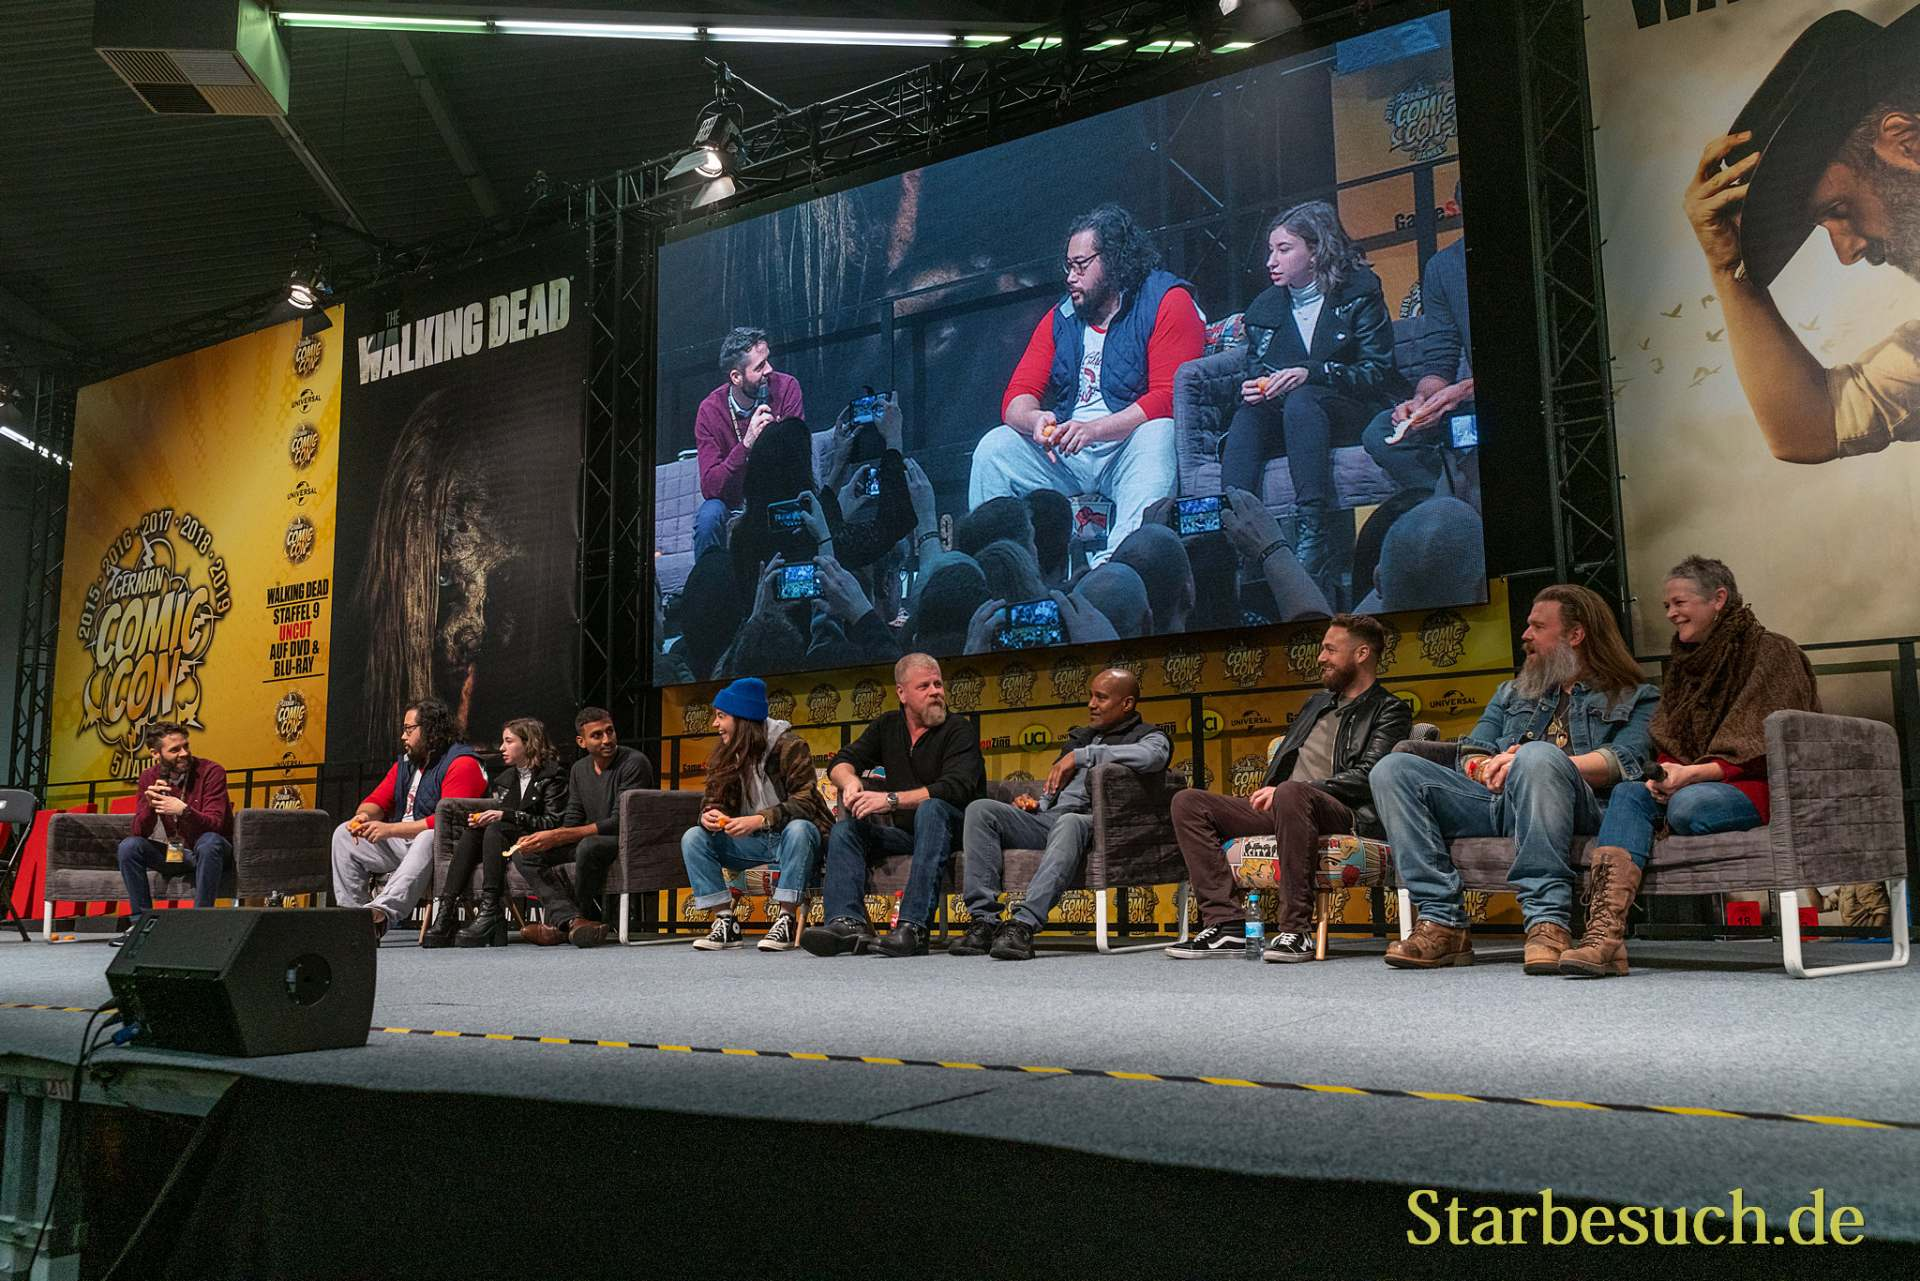 DORTMUND, GERMANY - December 7th 2019: Cooper Andrews, Katelyn Nacon, Avi Nash, Alanna Masterson, Michael Cudlitz, Seth Gilliam, Ross Marquand, Ryan Hurst and Melissa McBride at German Comic Con Dortmund